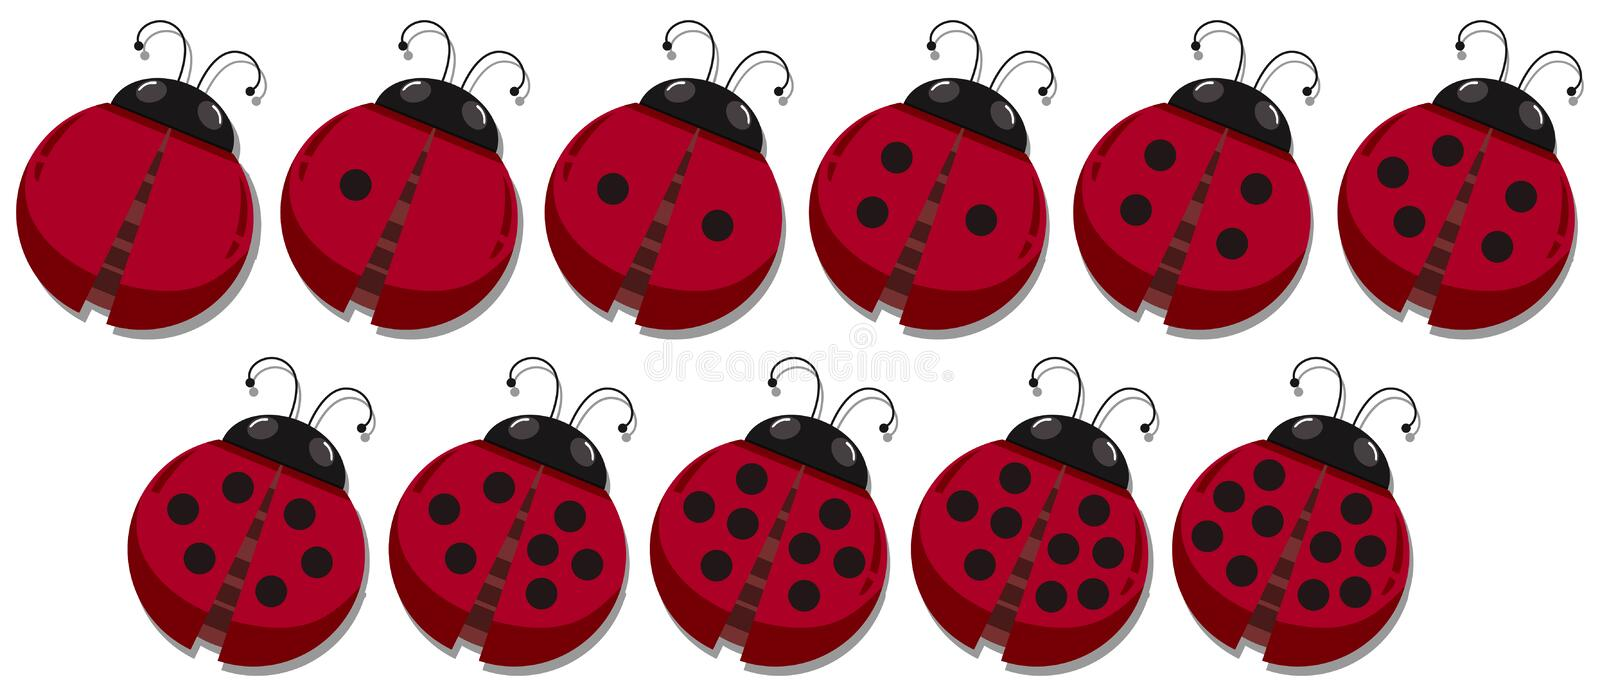 Math count ladybug spots. Illustration stock illustration